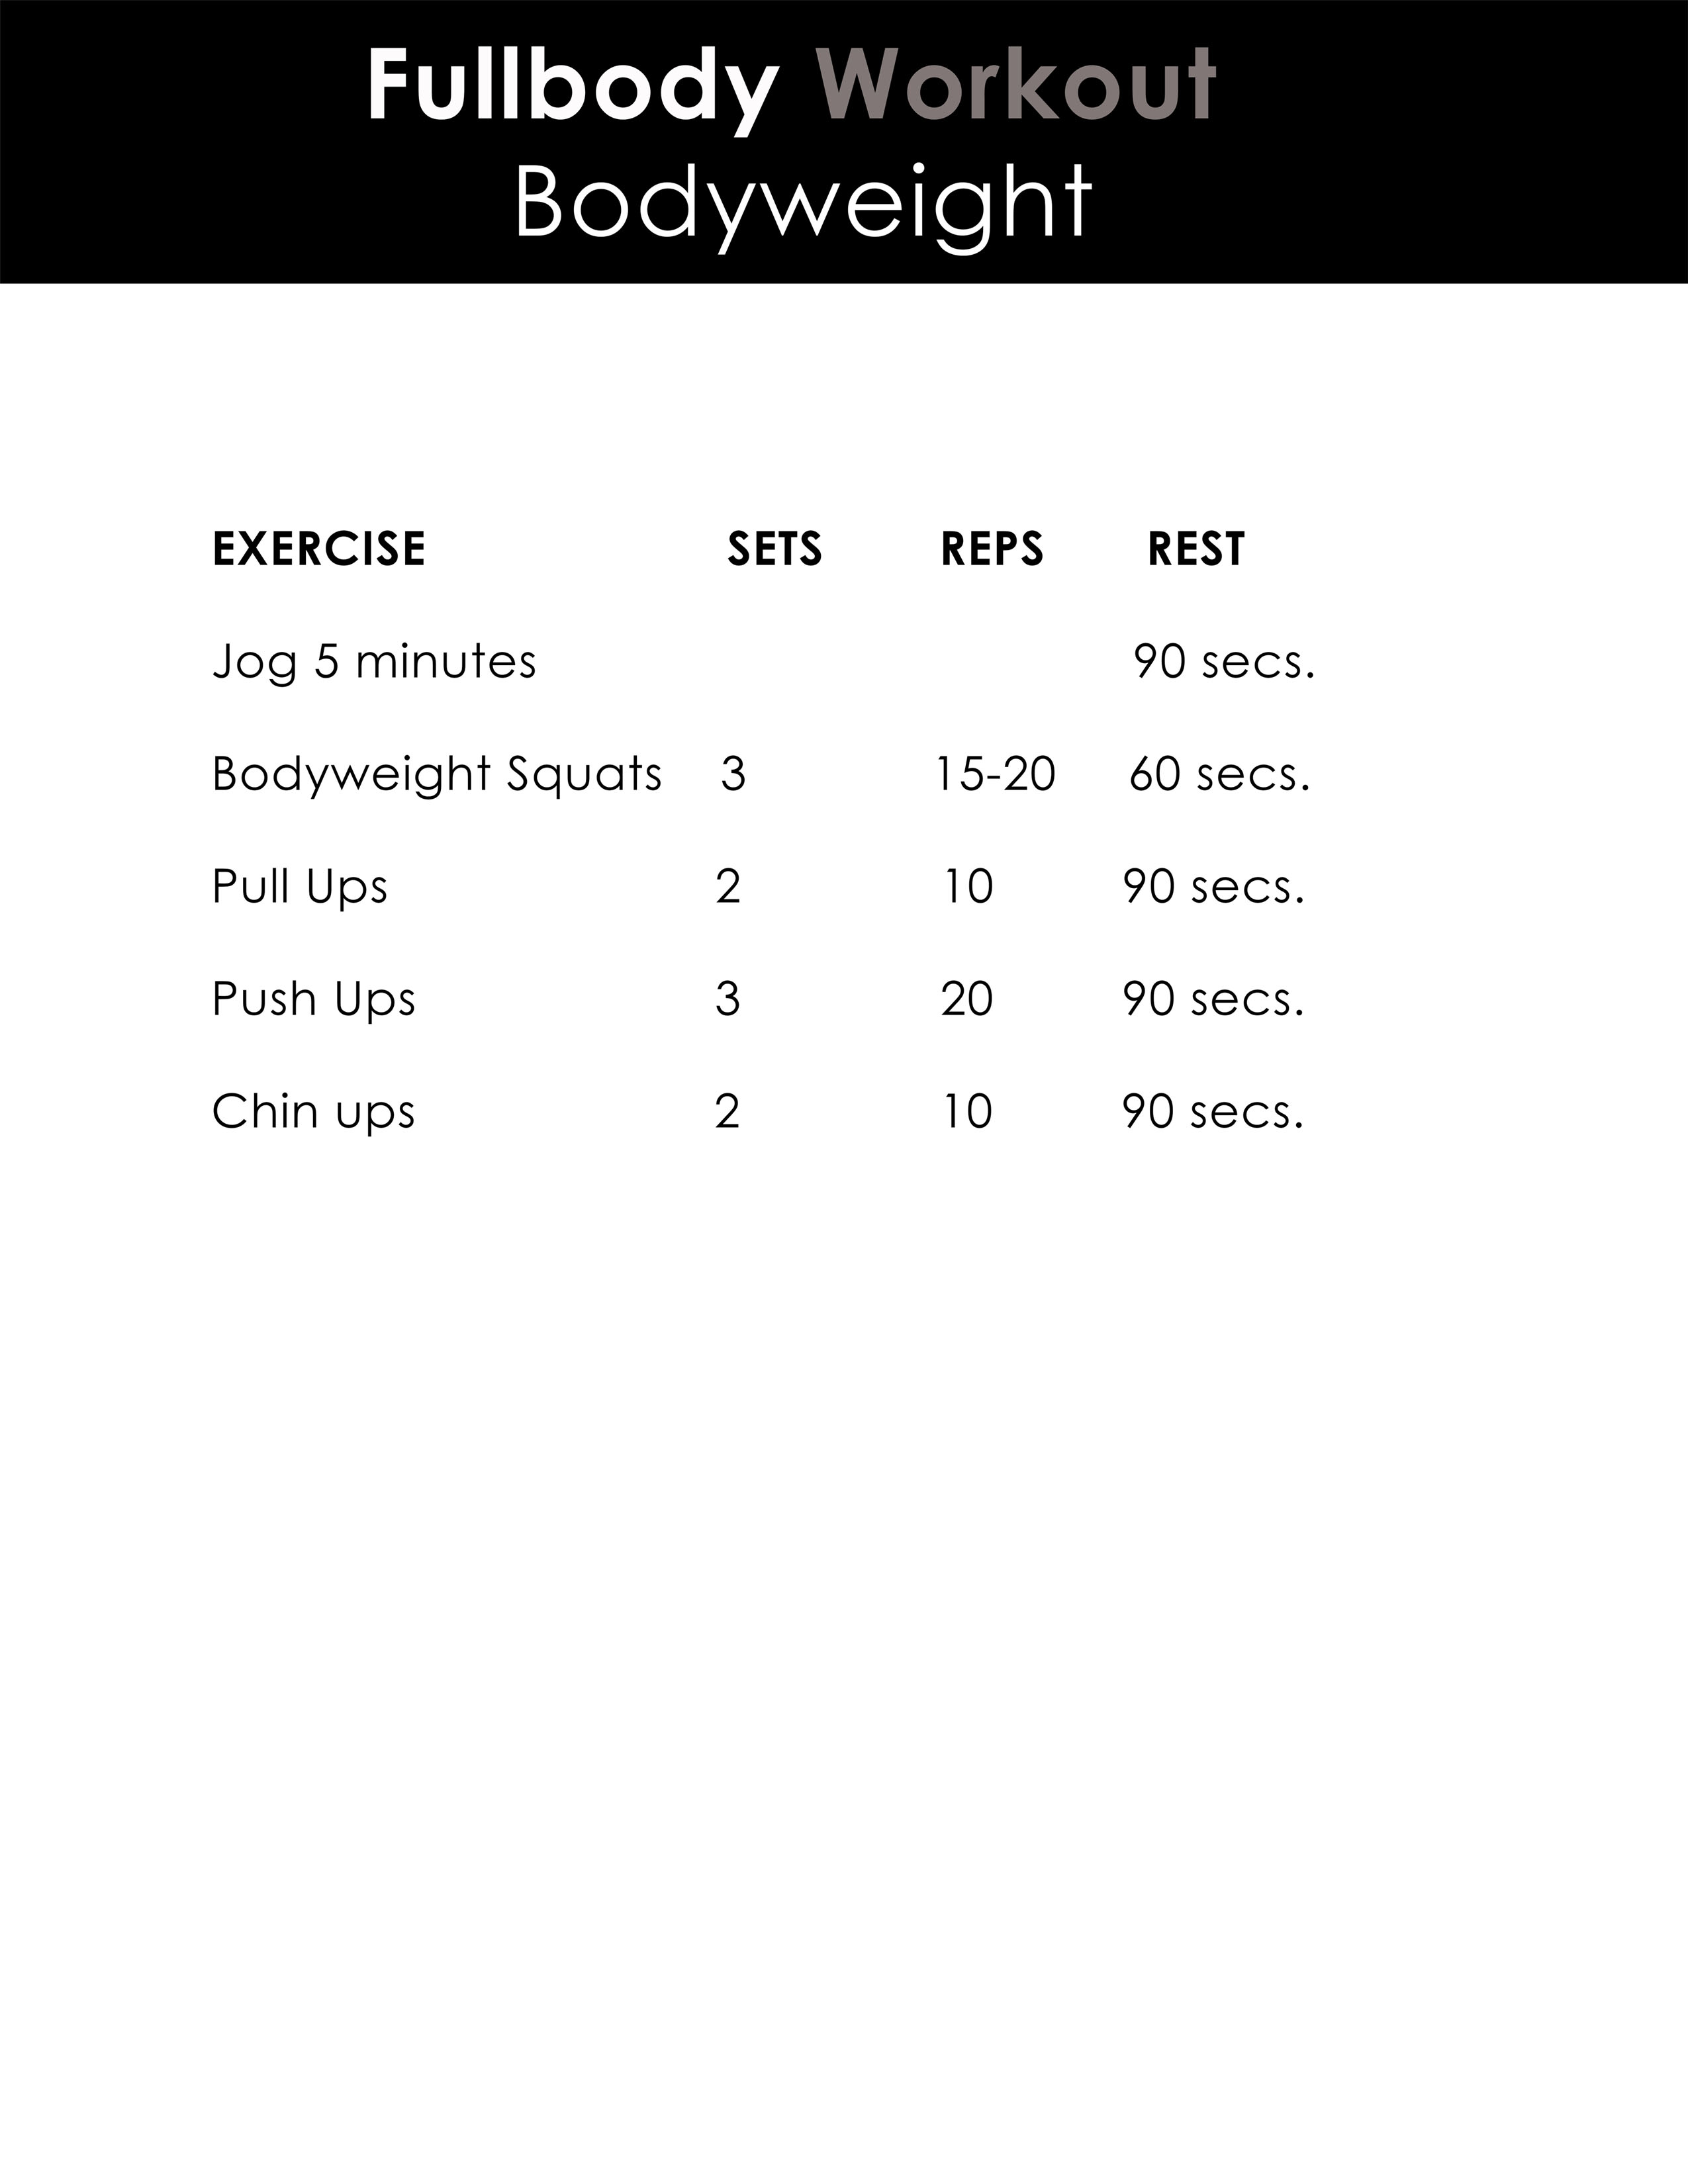 Your 20 Minute Workout